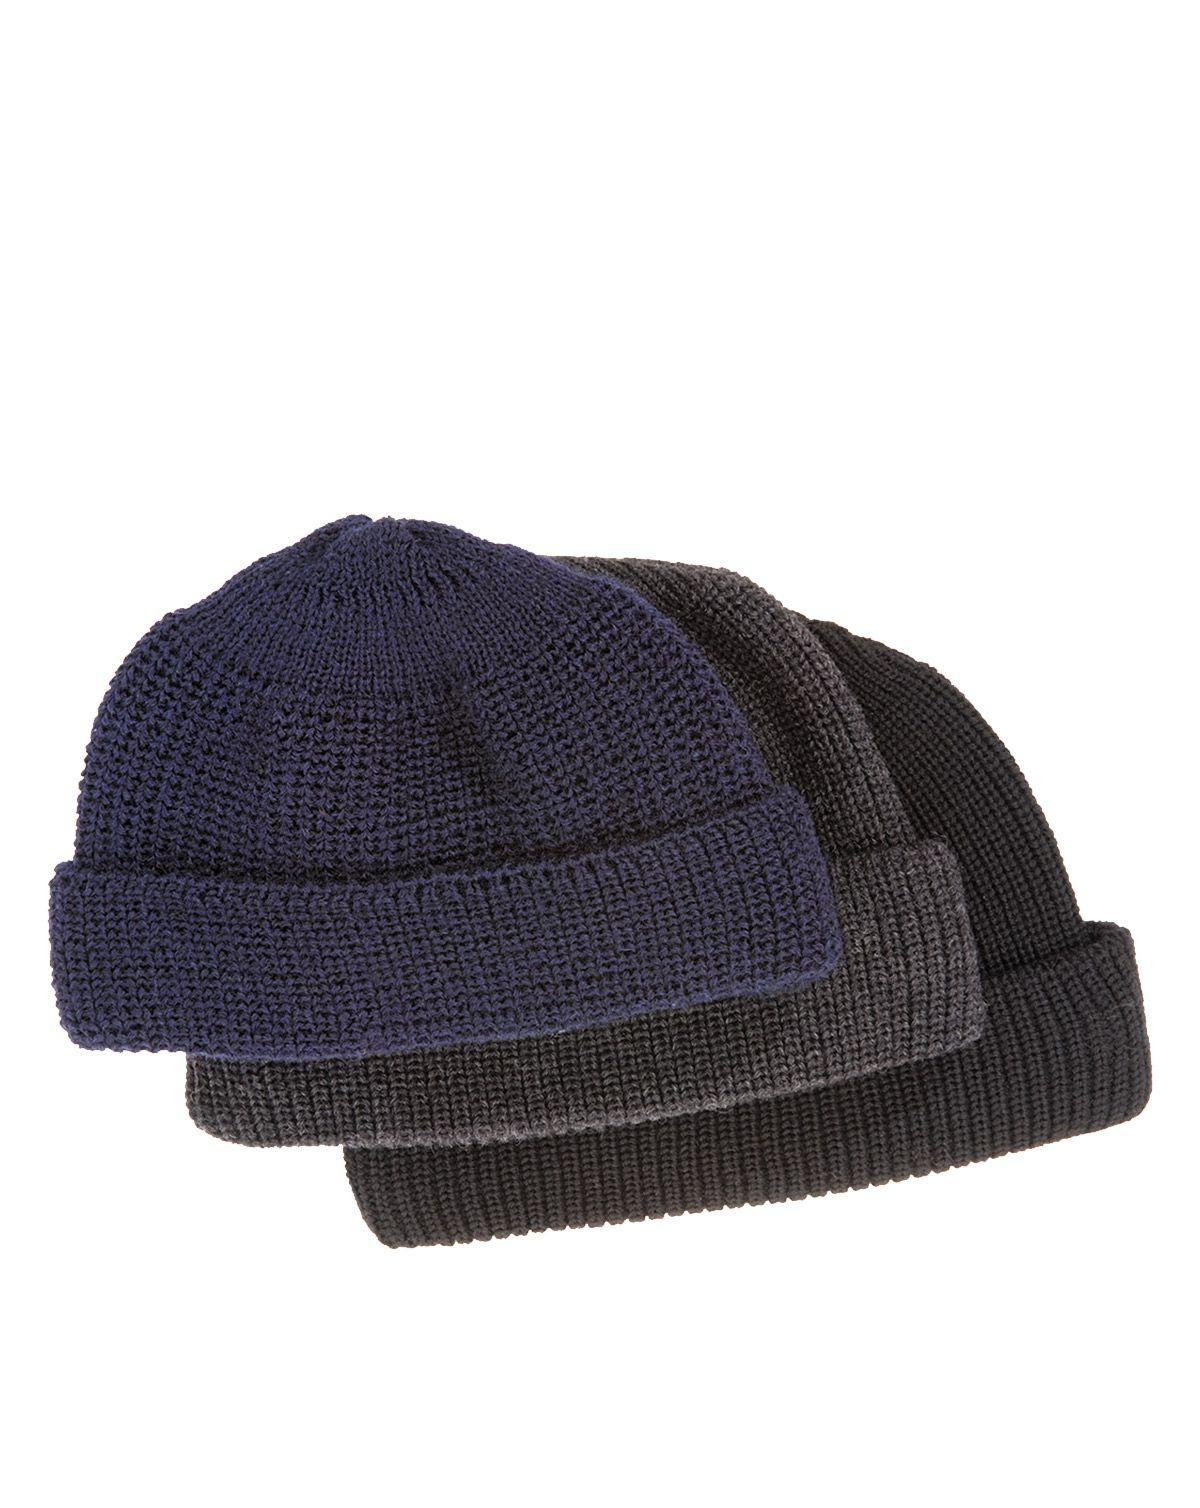 Image of   FHB Uld hat - Johann (Sort, One Size)